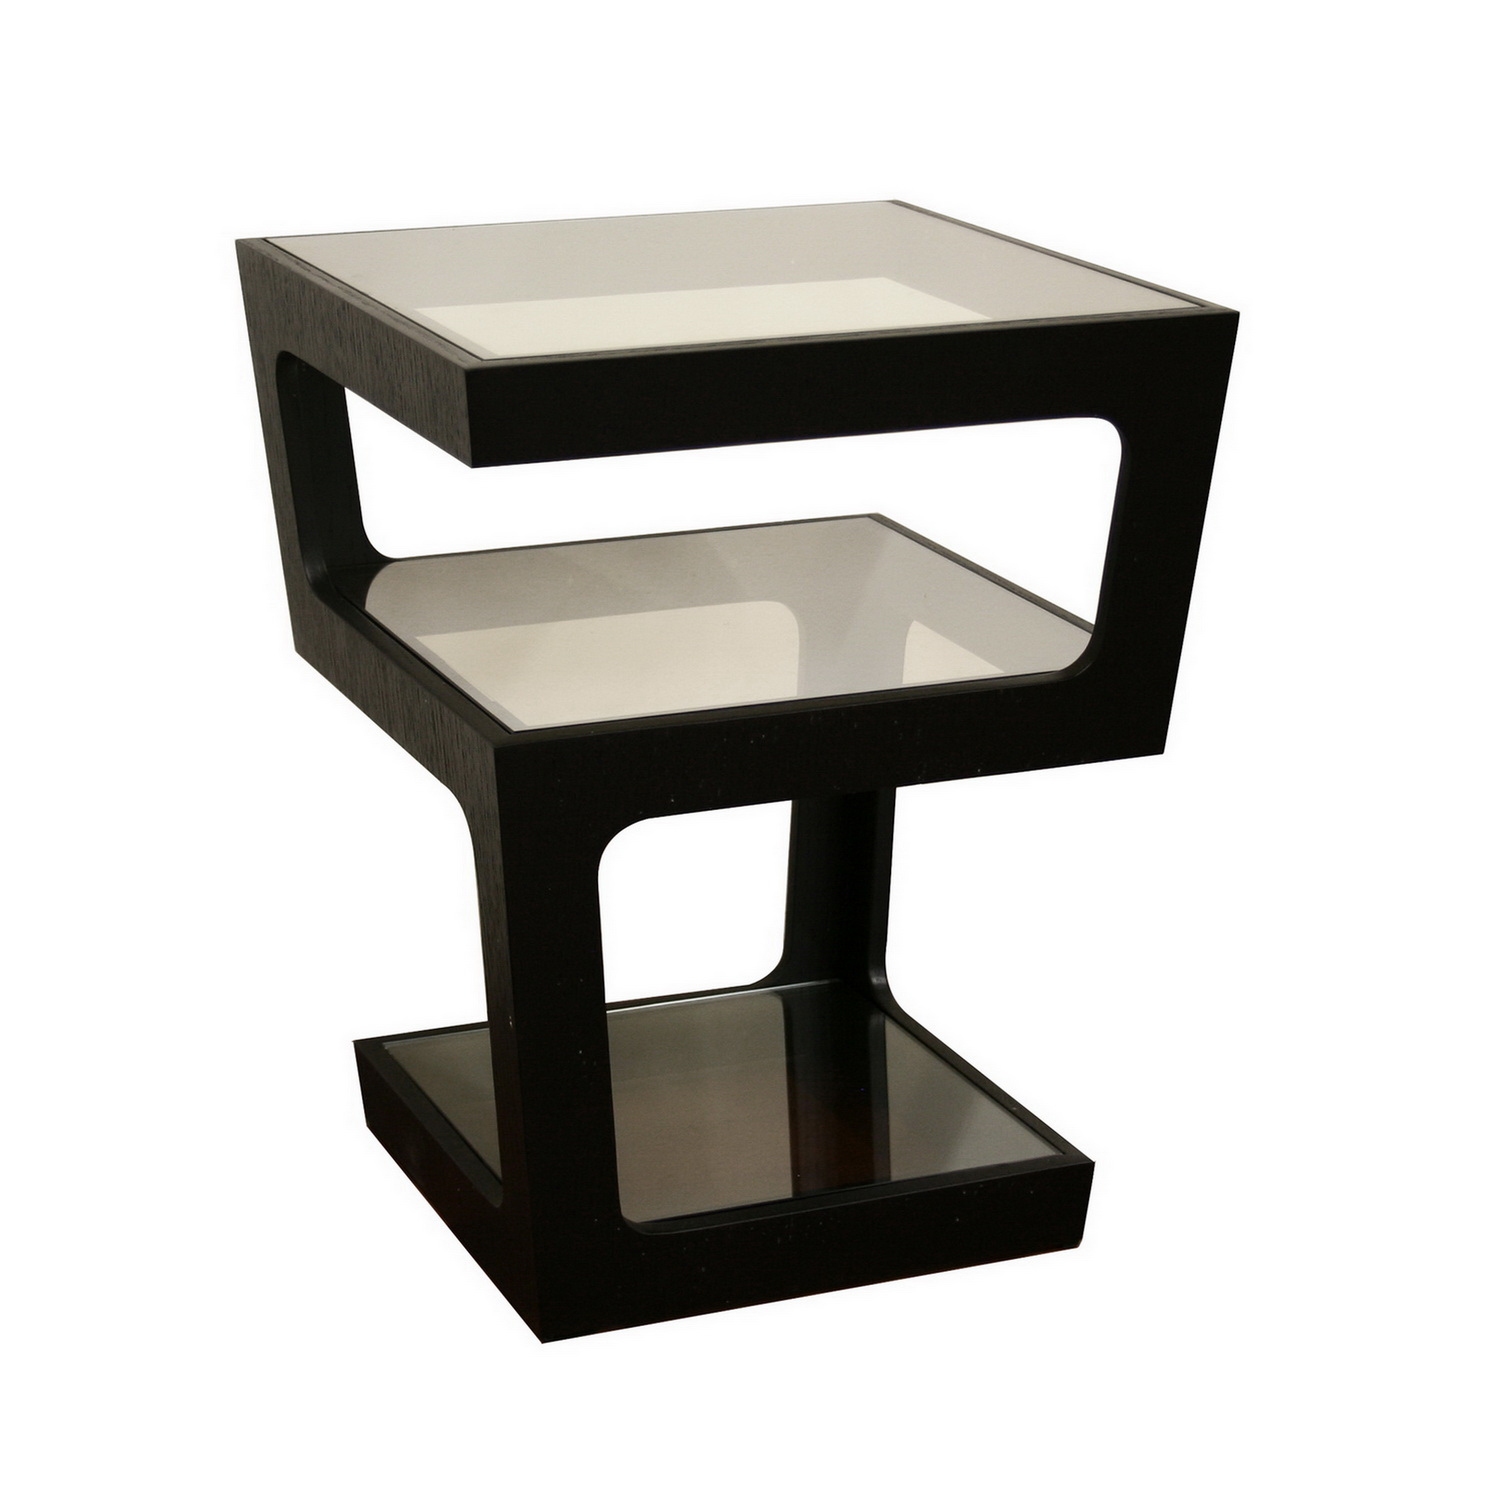 best contemporary accent table with living room decor gorgeous about side tables and dressers bench white corner pier one imports clearance furniture rustic coffee toronto